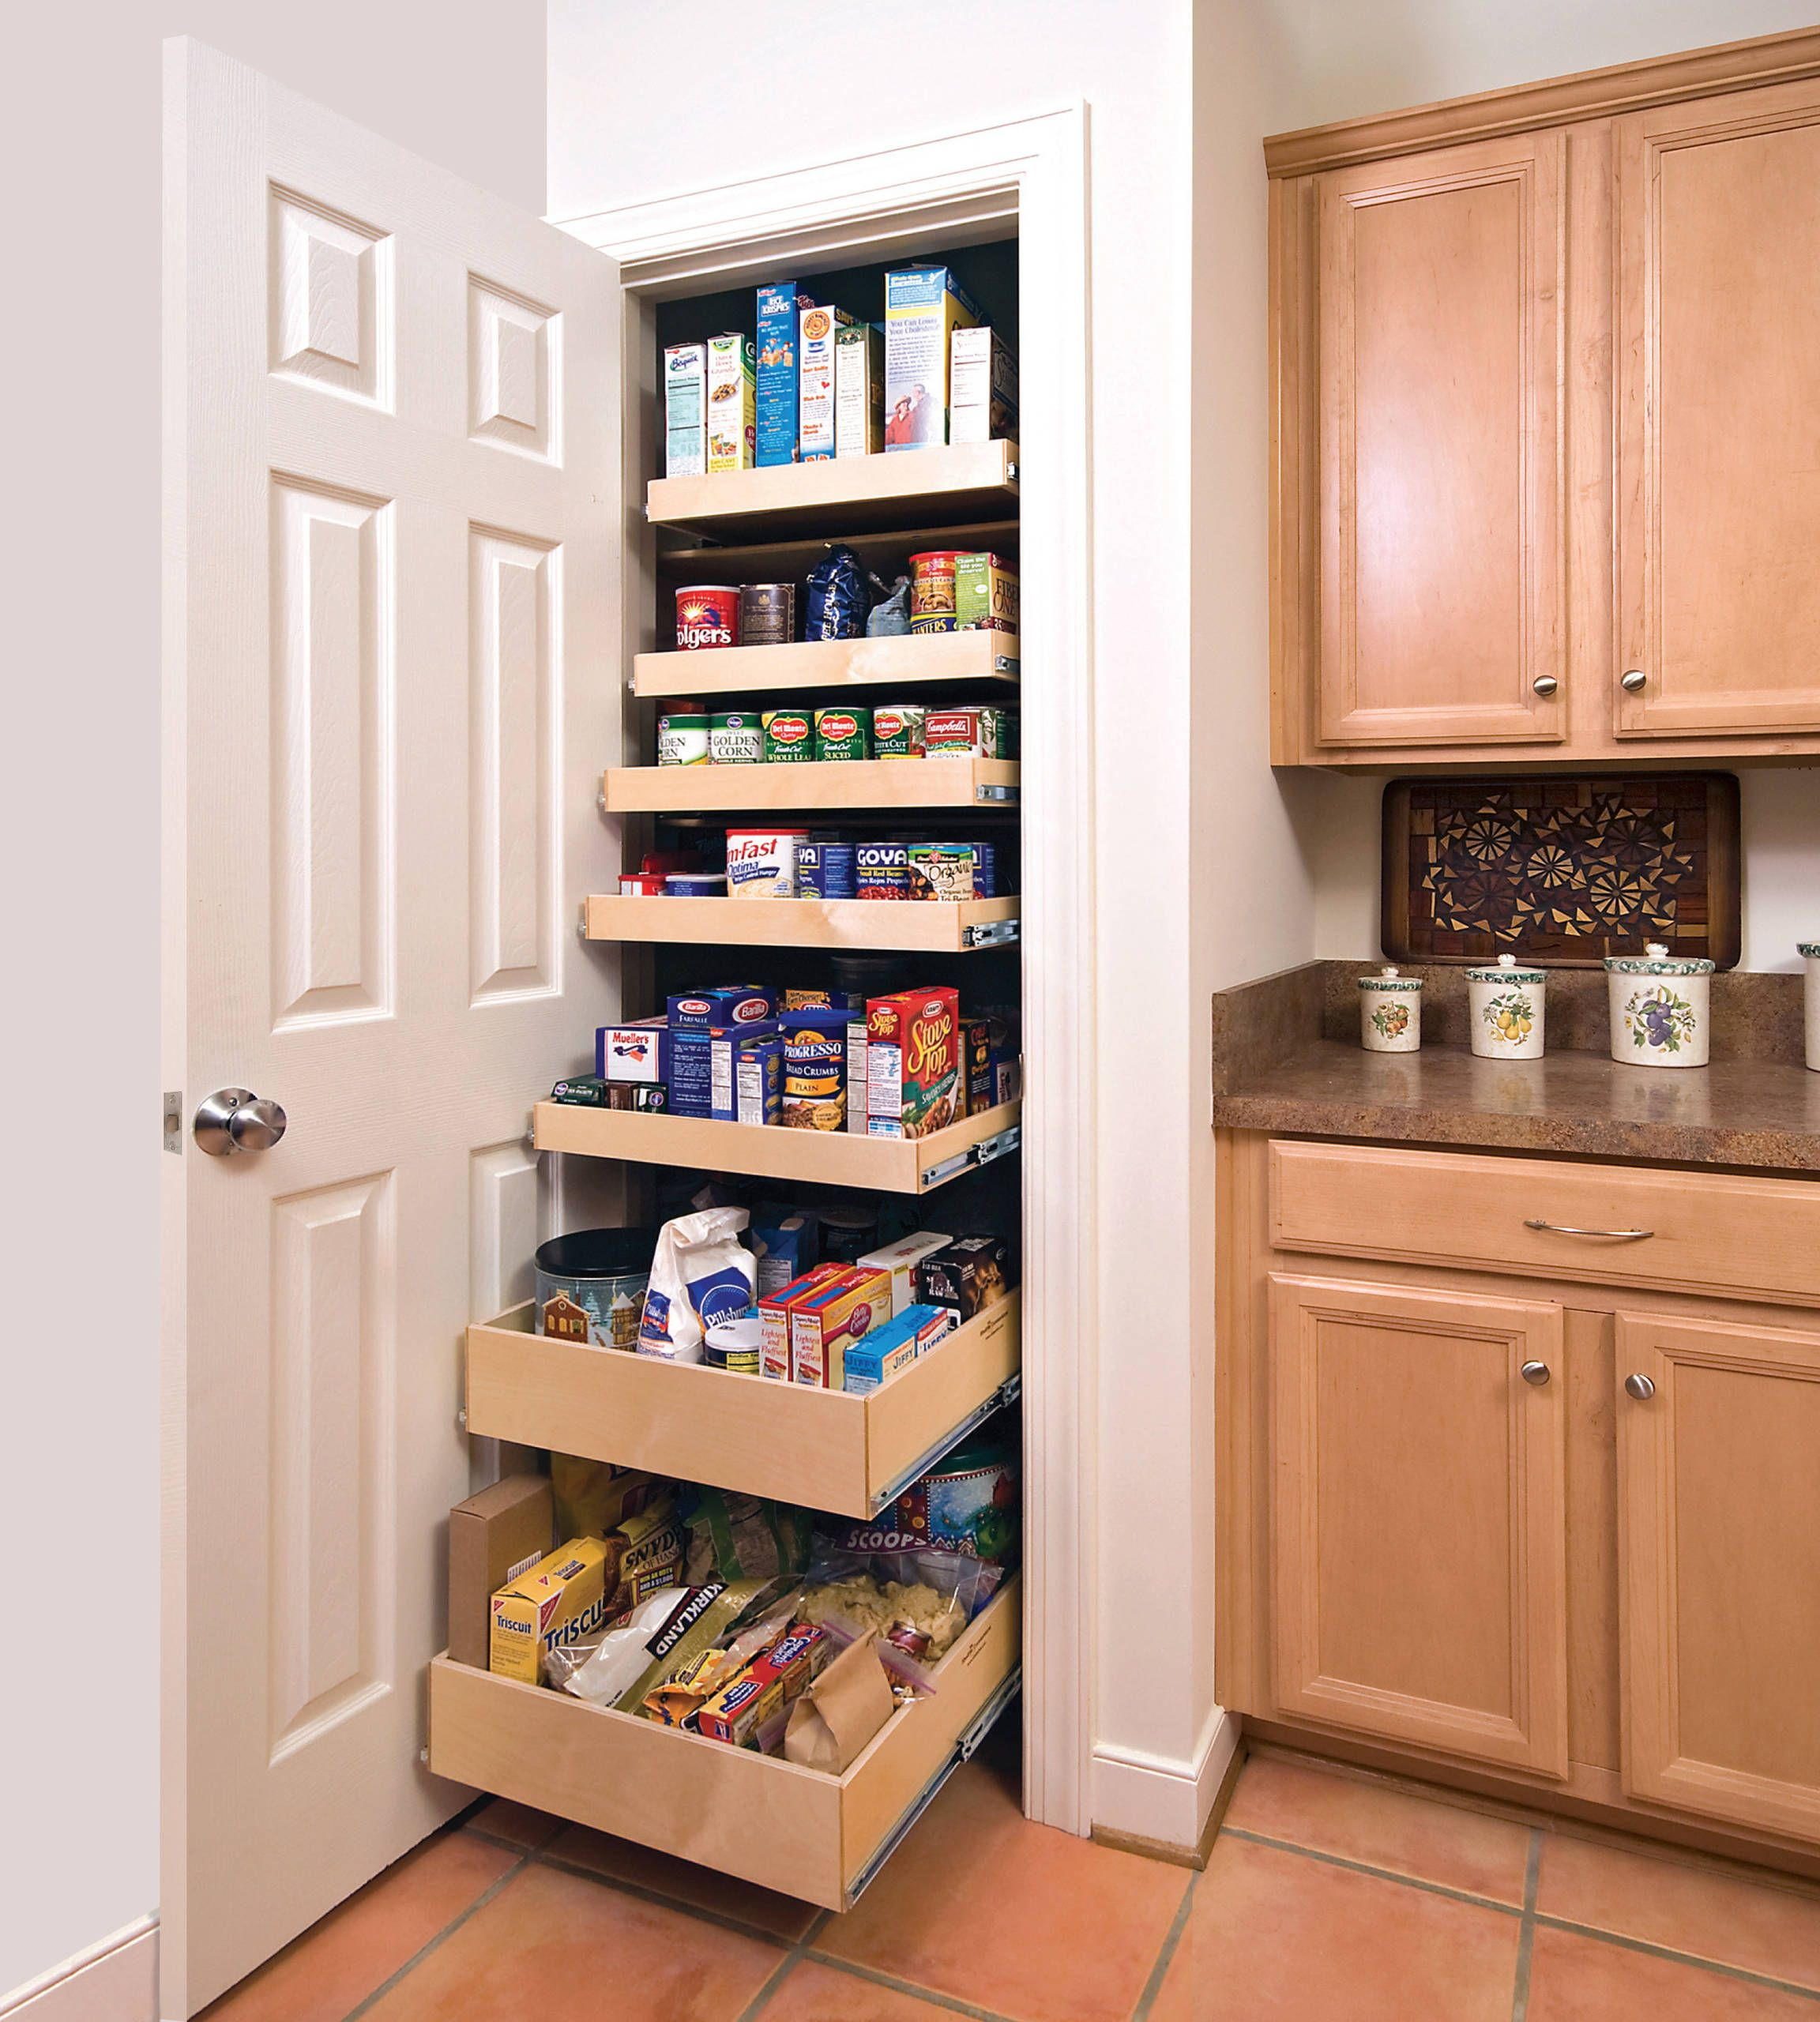 Pantry Pullout Shelves Kitchen Atlanta By Shelfgenie National Houzz Pantry Design Kitchen Pantry Design Home Kitchens